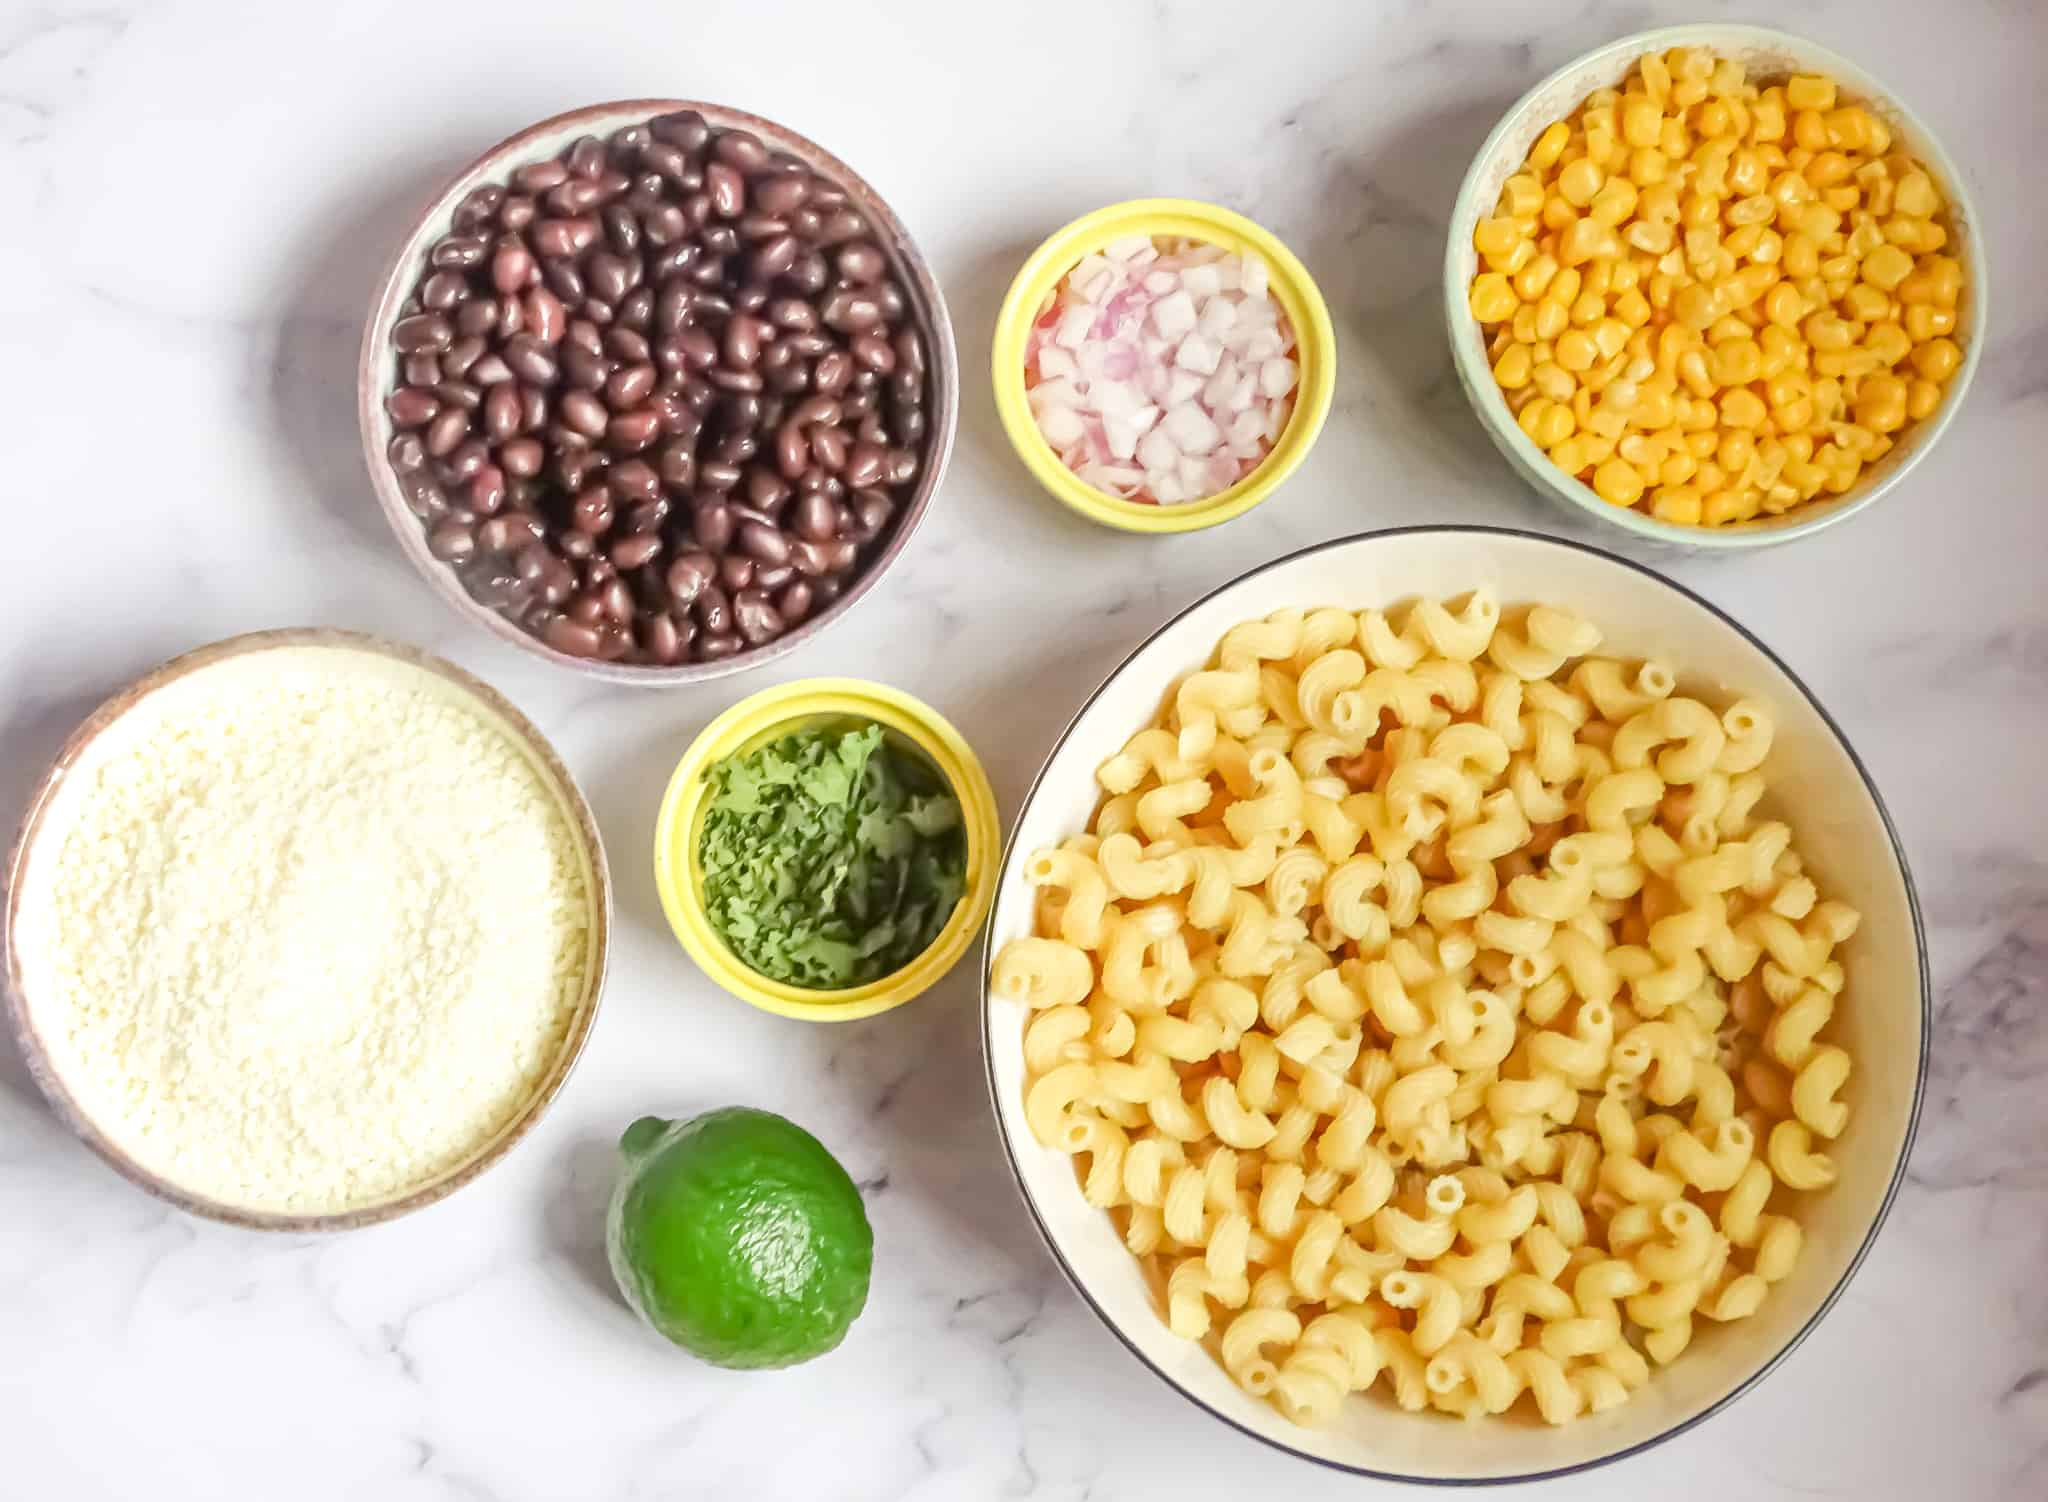 Mexican street corn pasta salad ingredients in bowls